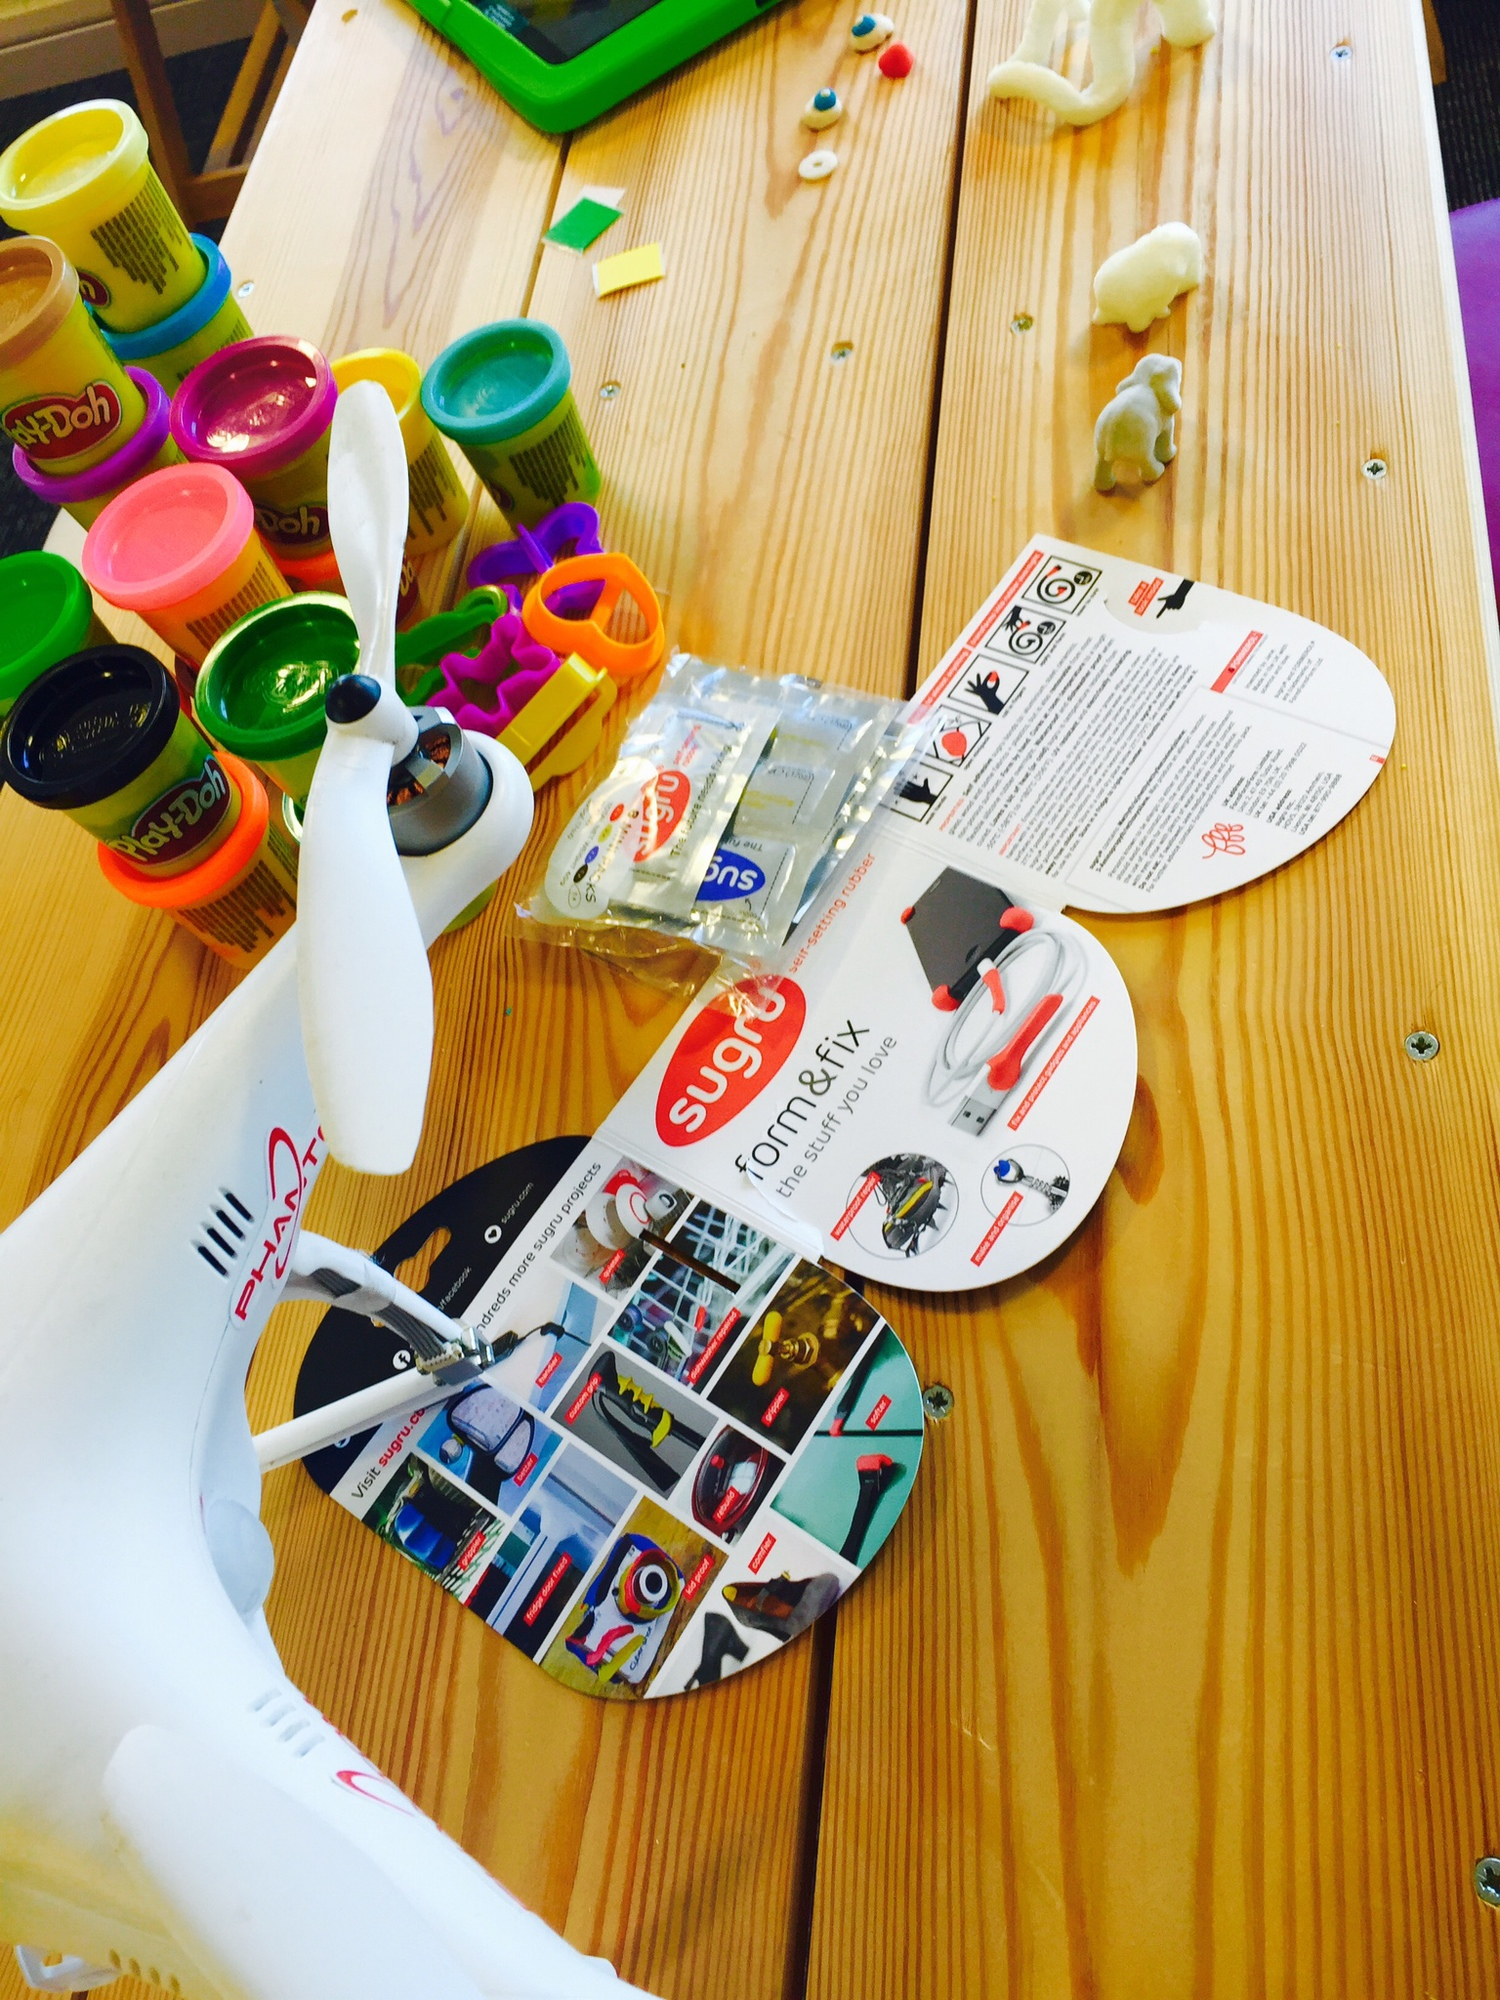 The Lab MakerSpace: Could Sugru become an essential feature of all #ukhousing homes?